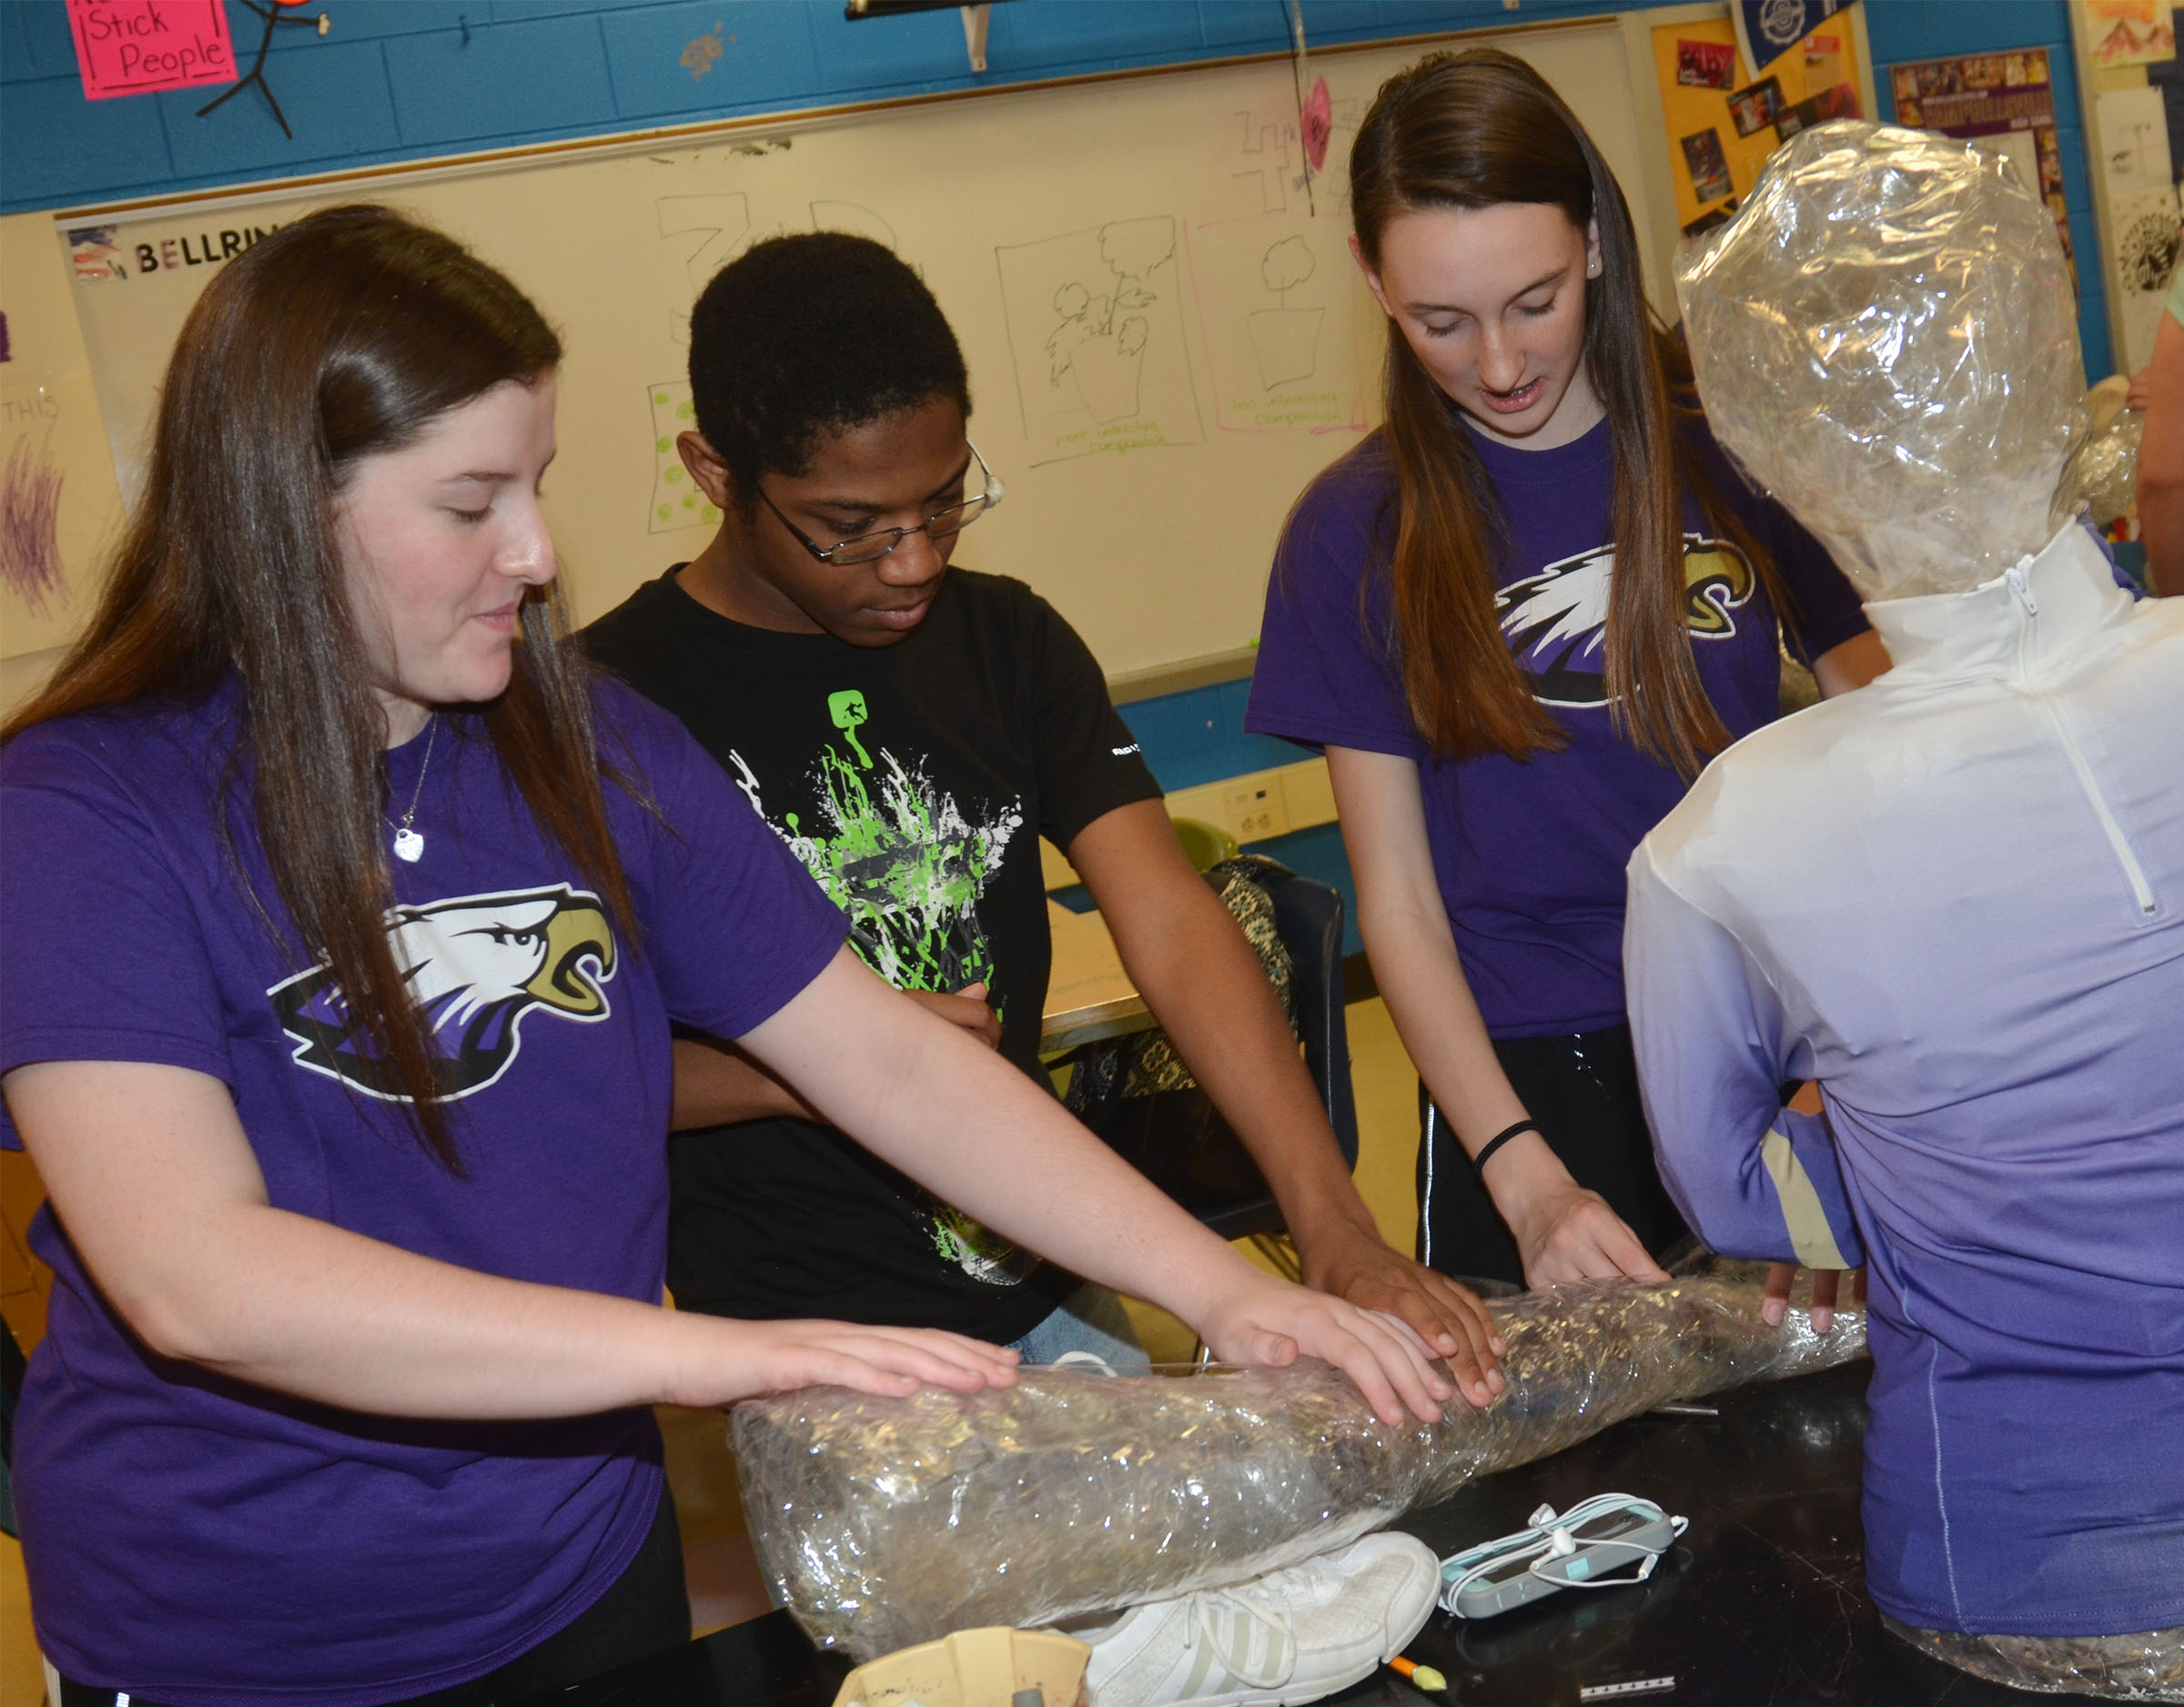 From left, CHS freshman Alli Wilson, sophomore Travis Nash and freshman Zoe McAninch put their tape person together.